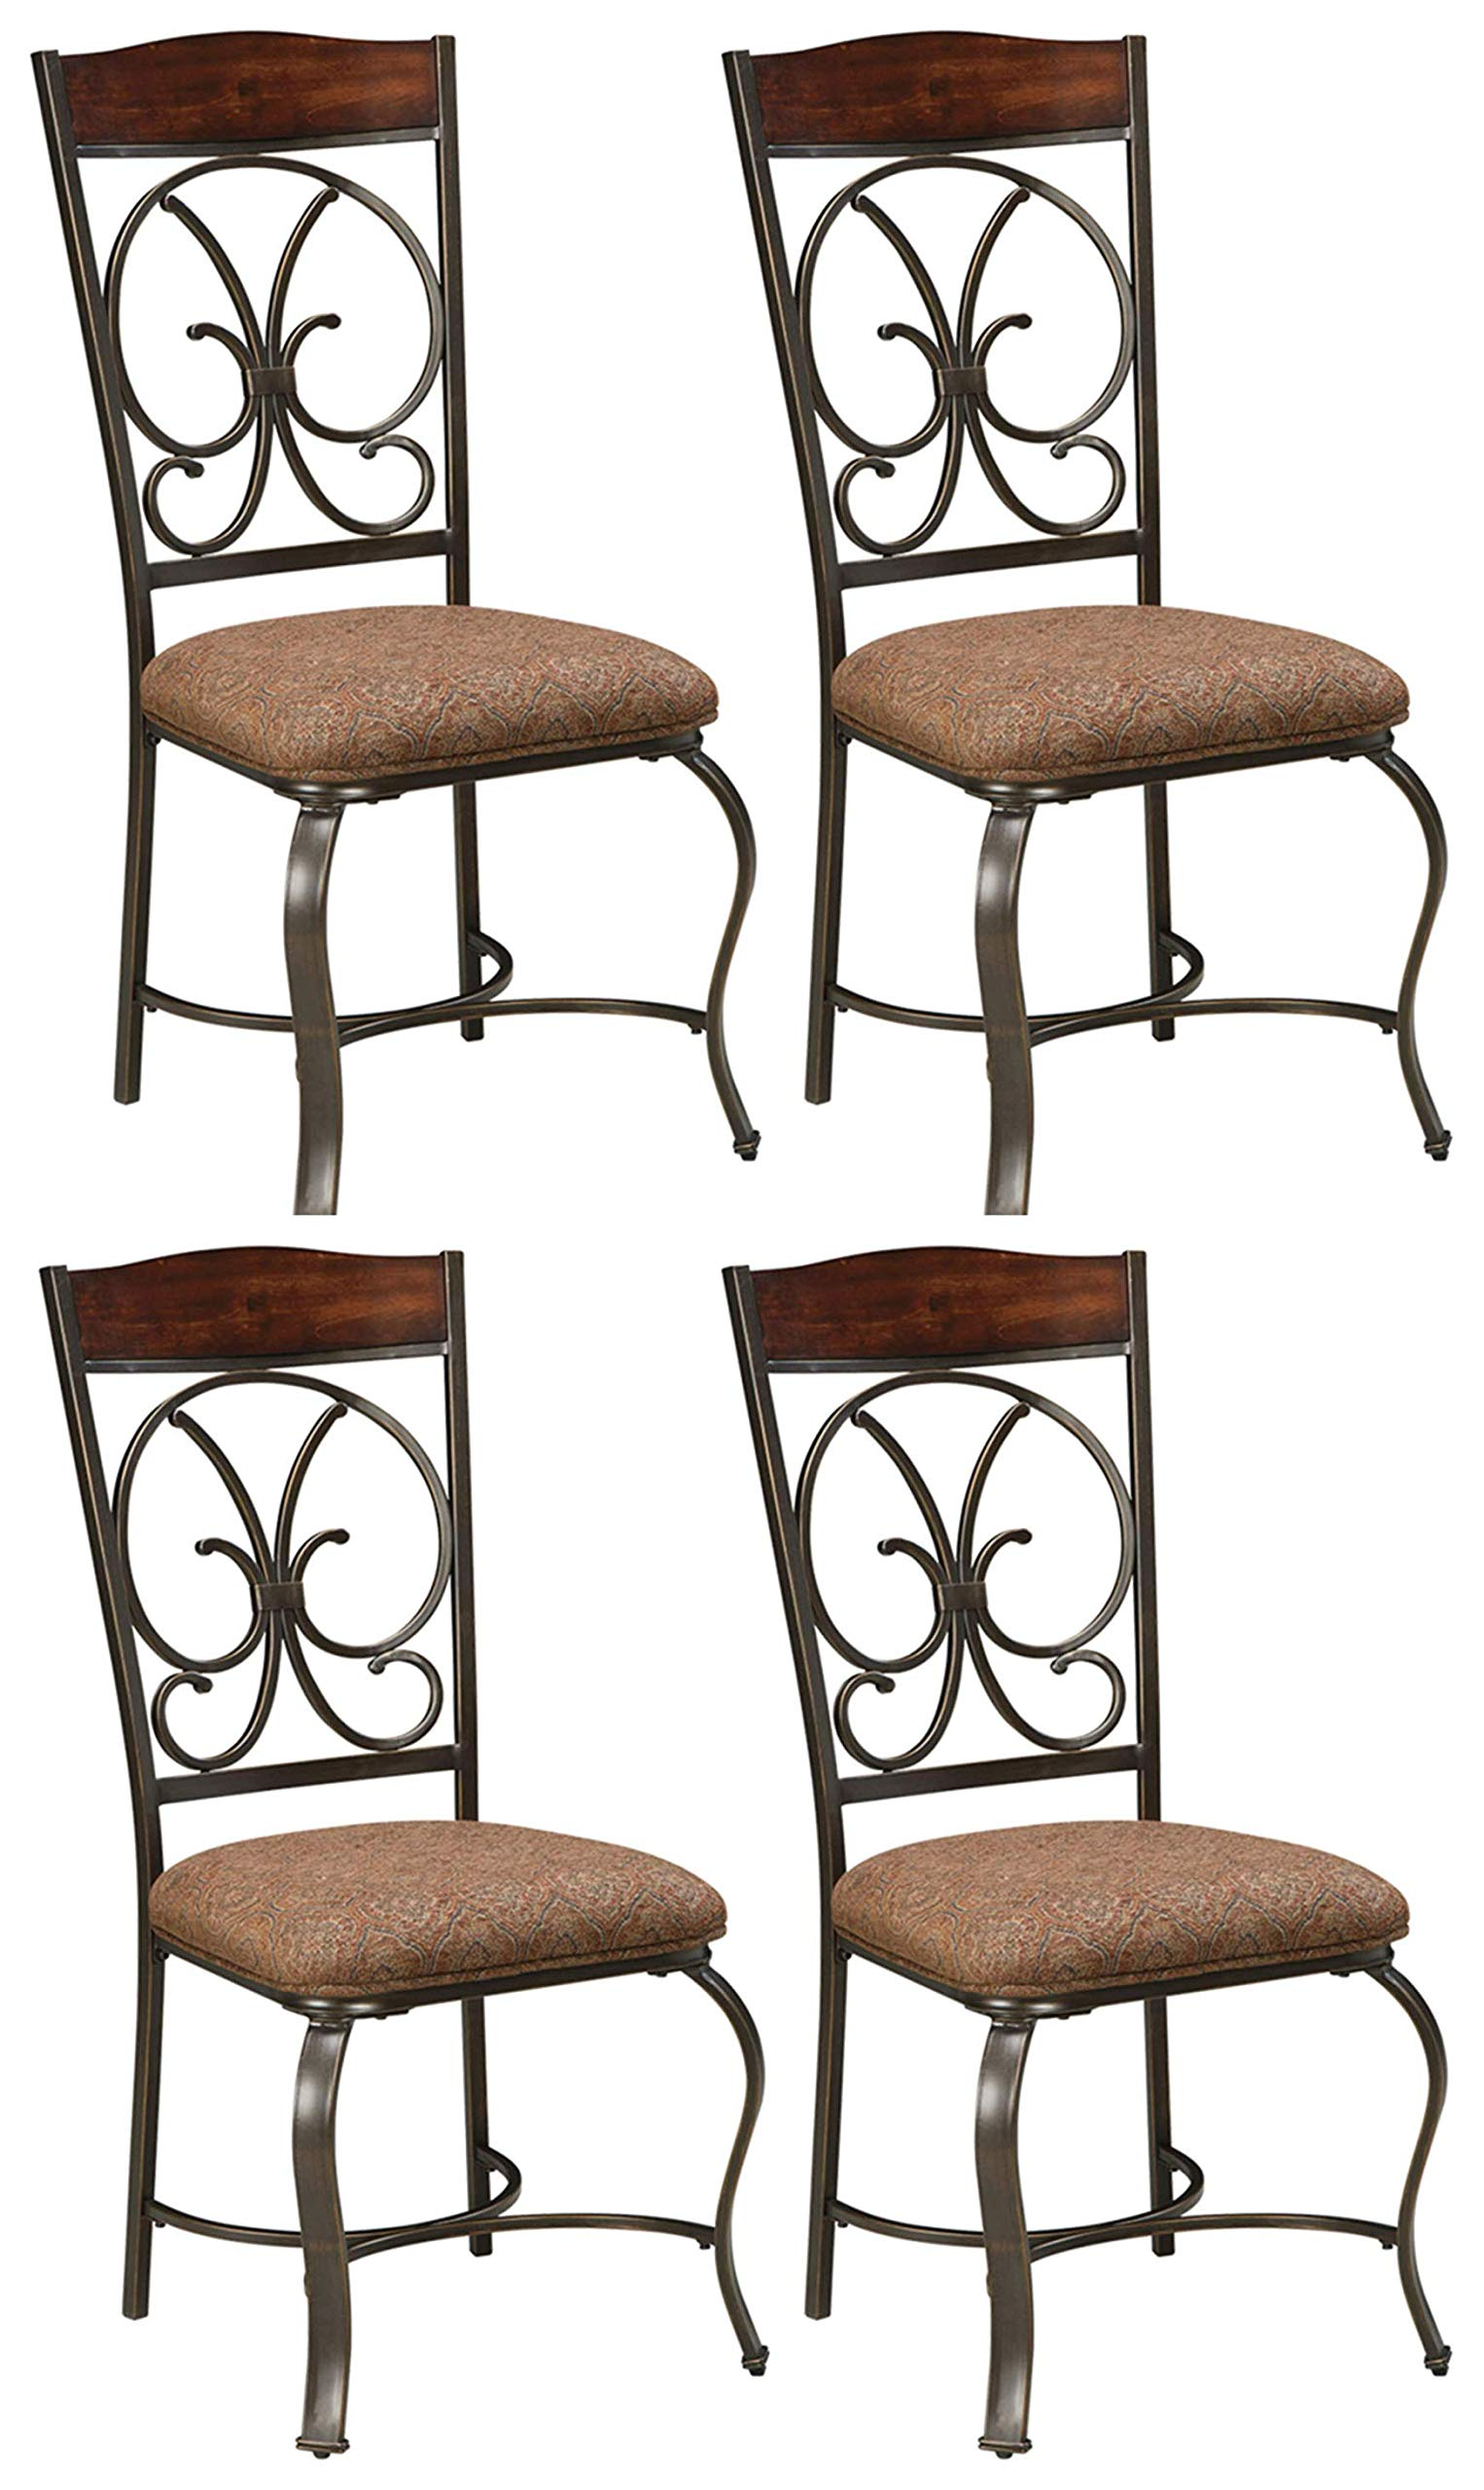 Ashley Furniture Signature Design - Glambrey Dining Room Chair Set - Scrolled Metal Accents - Set of 4 - Brown by Signature Design by Ashley